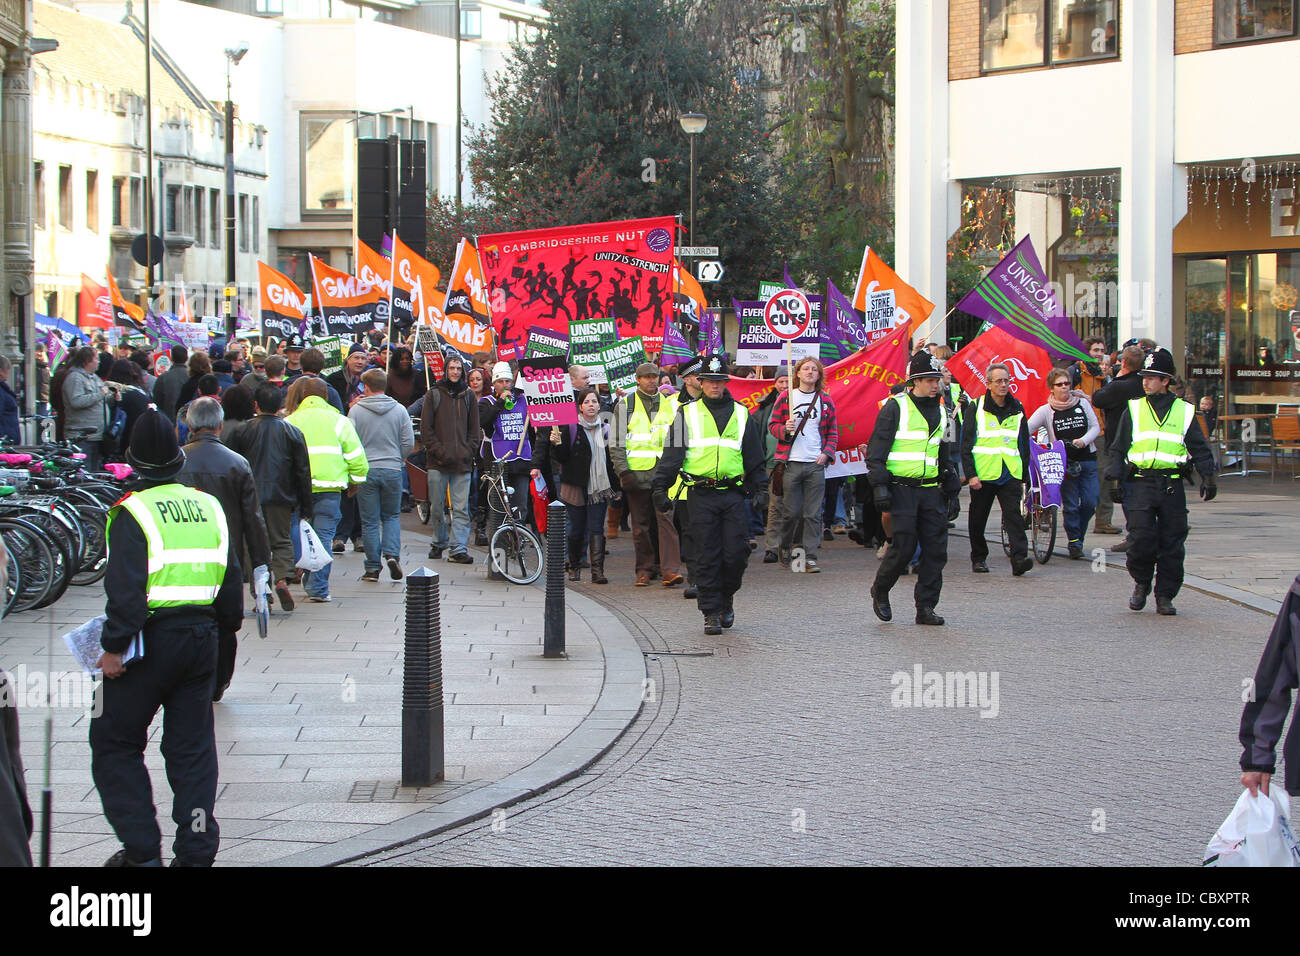 Public sector protest and demonstration in Cambridge on 30th November 2011 - Stock Image